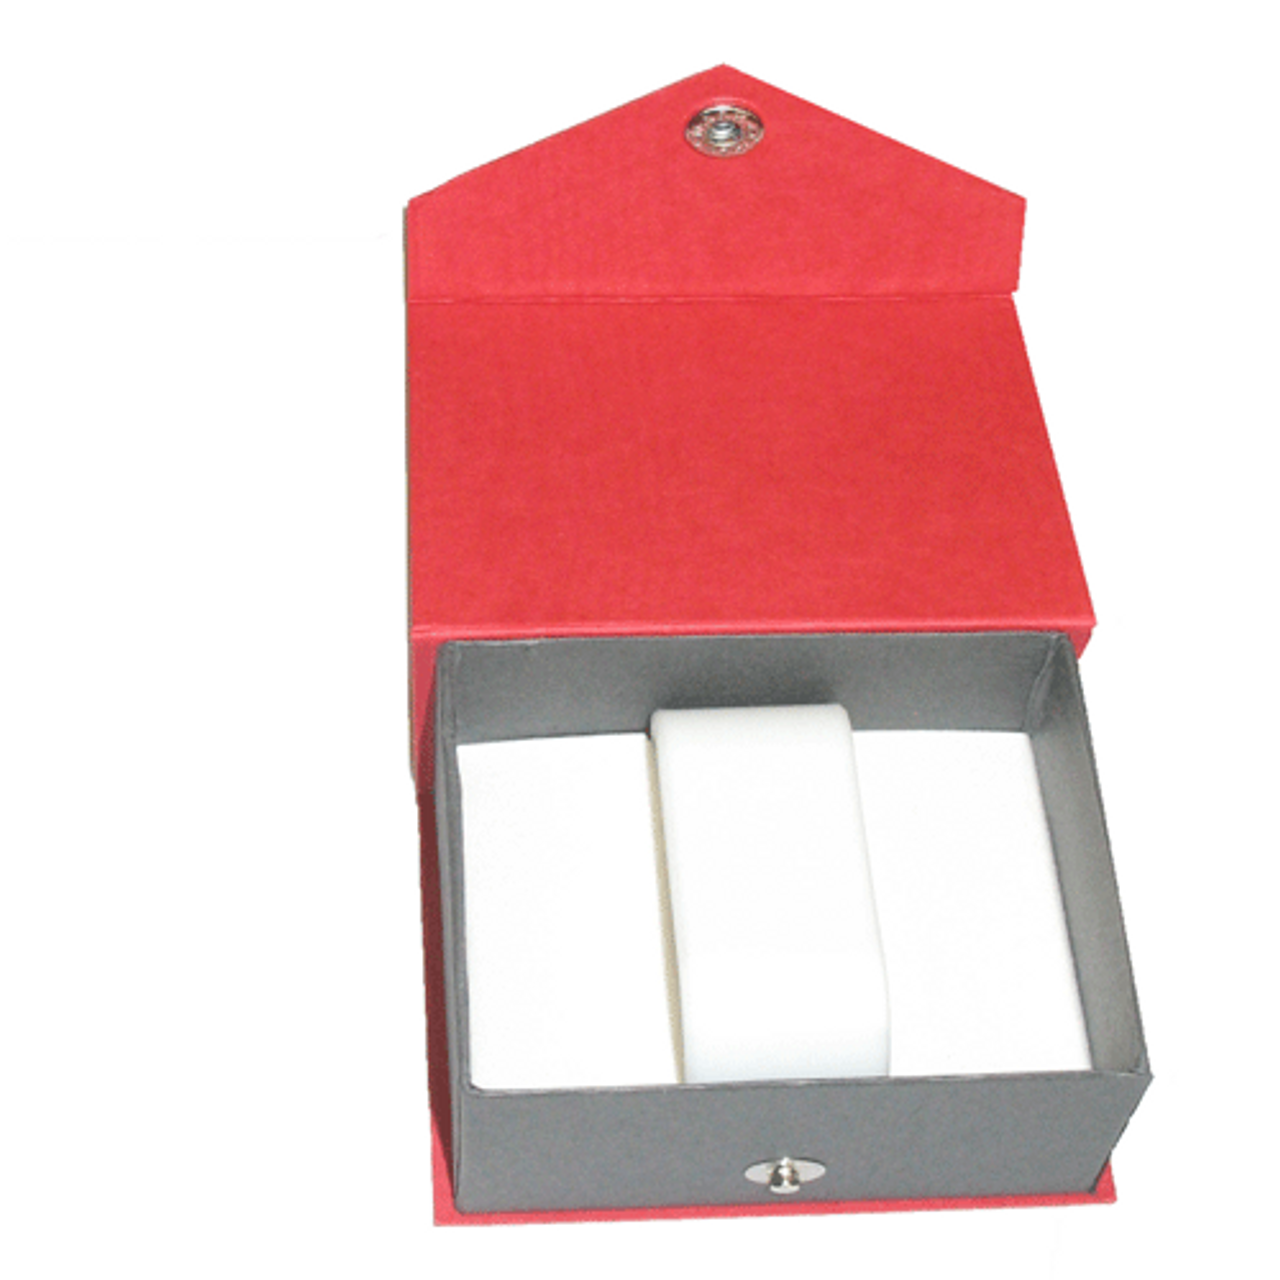 Contemporary Snap red watch/bangle box